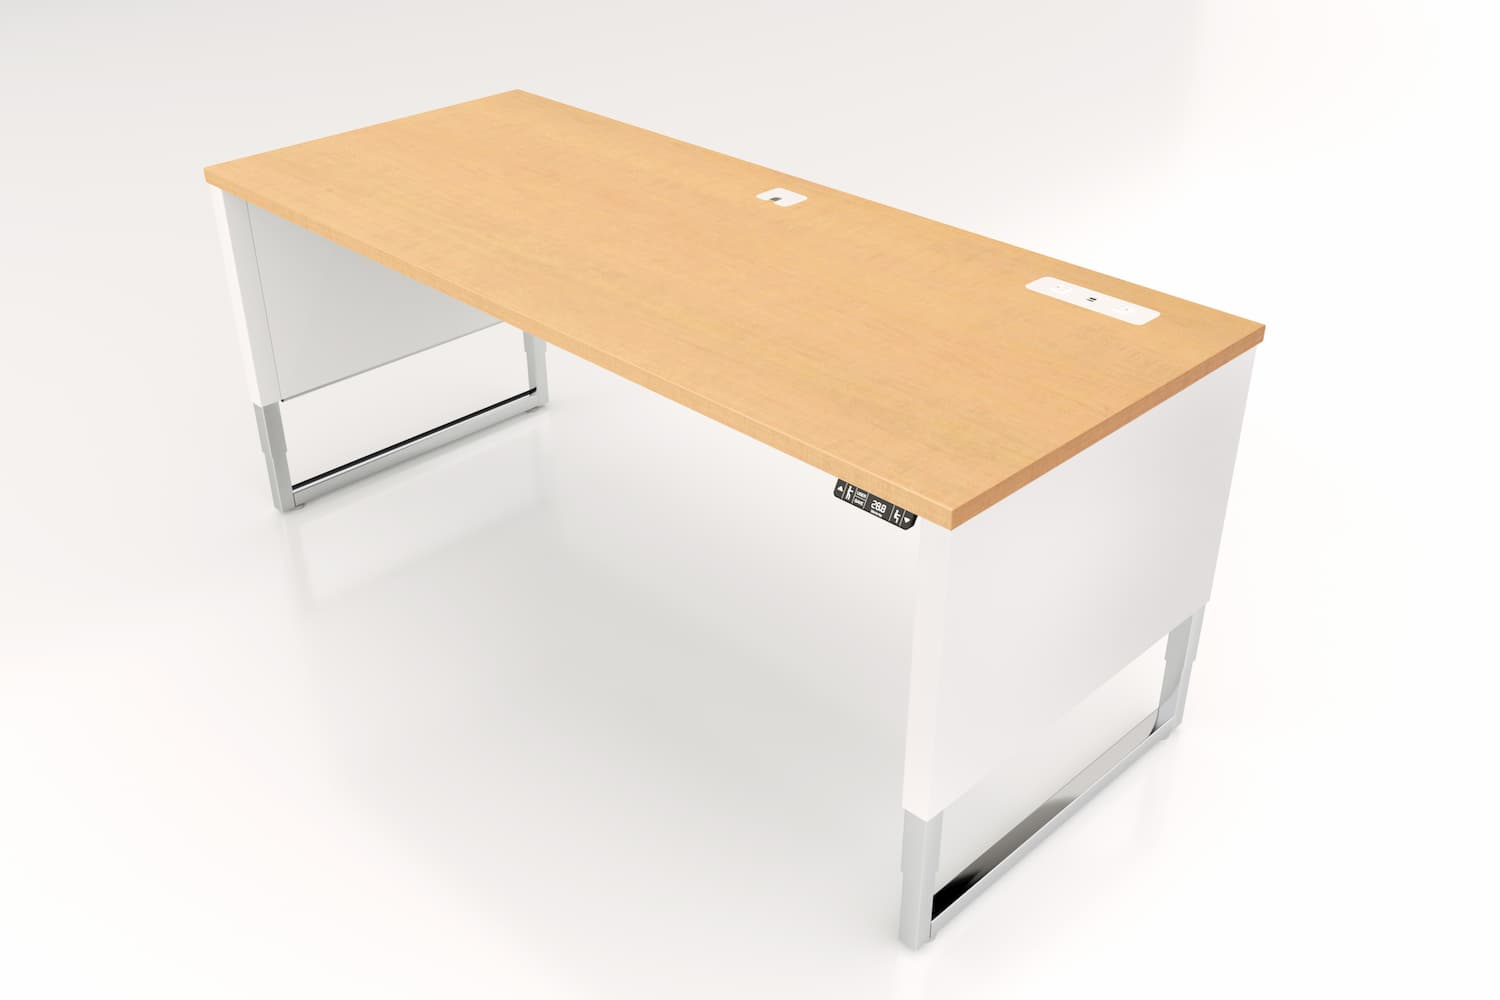 Advent-Desk-ADV-7230-WH-Custom-Top-6